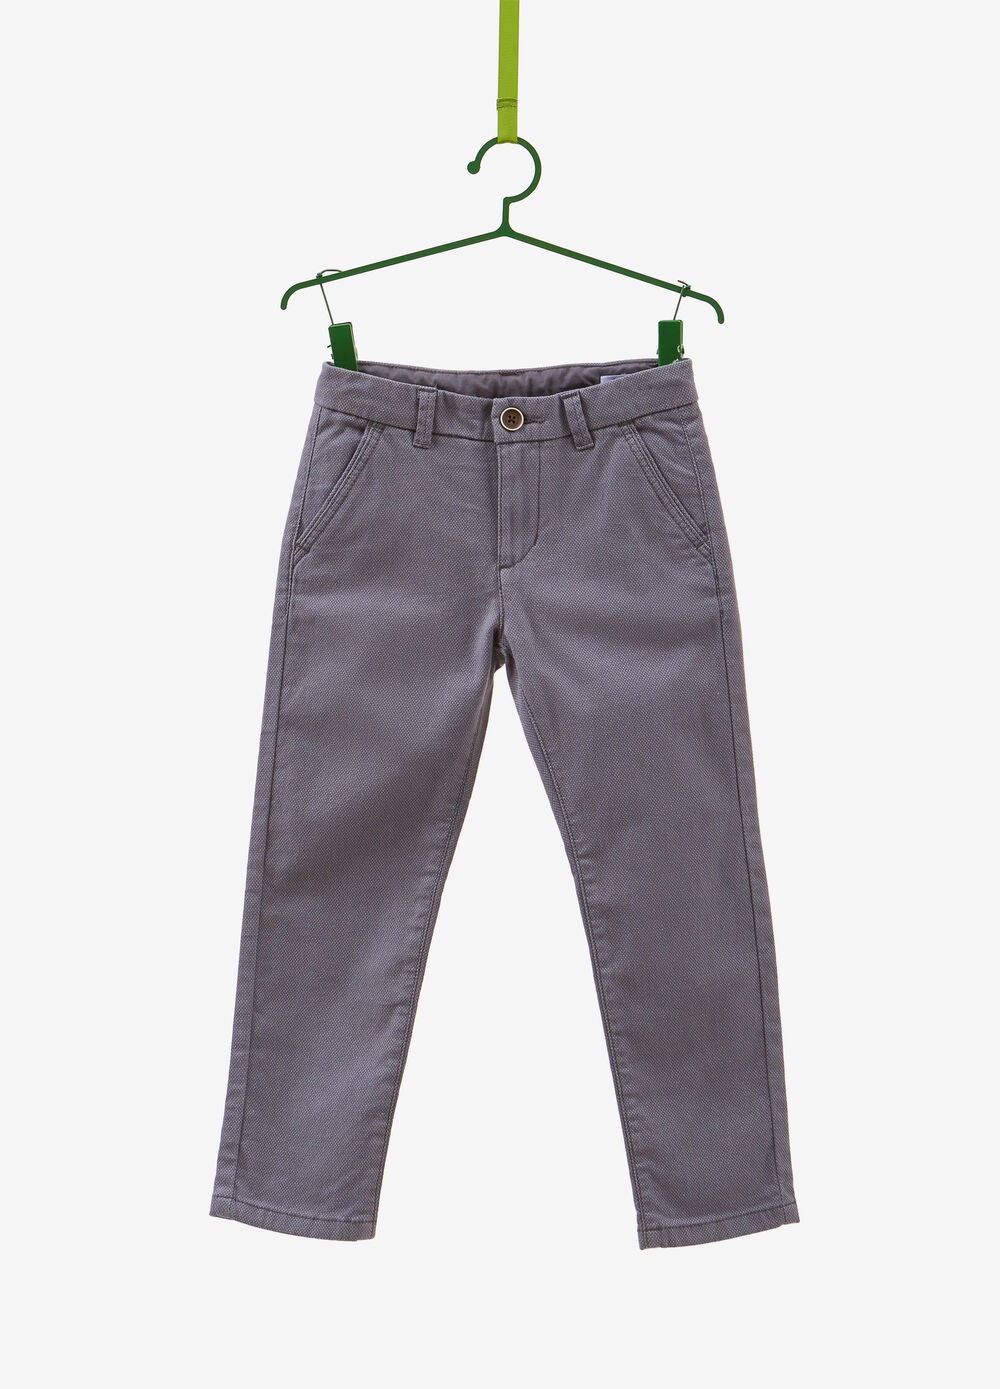 Stretch cotton trousers with speckled weave